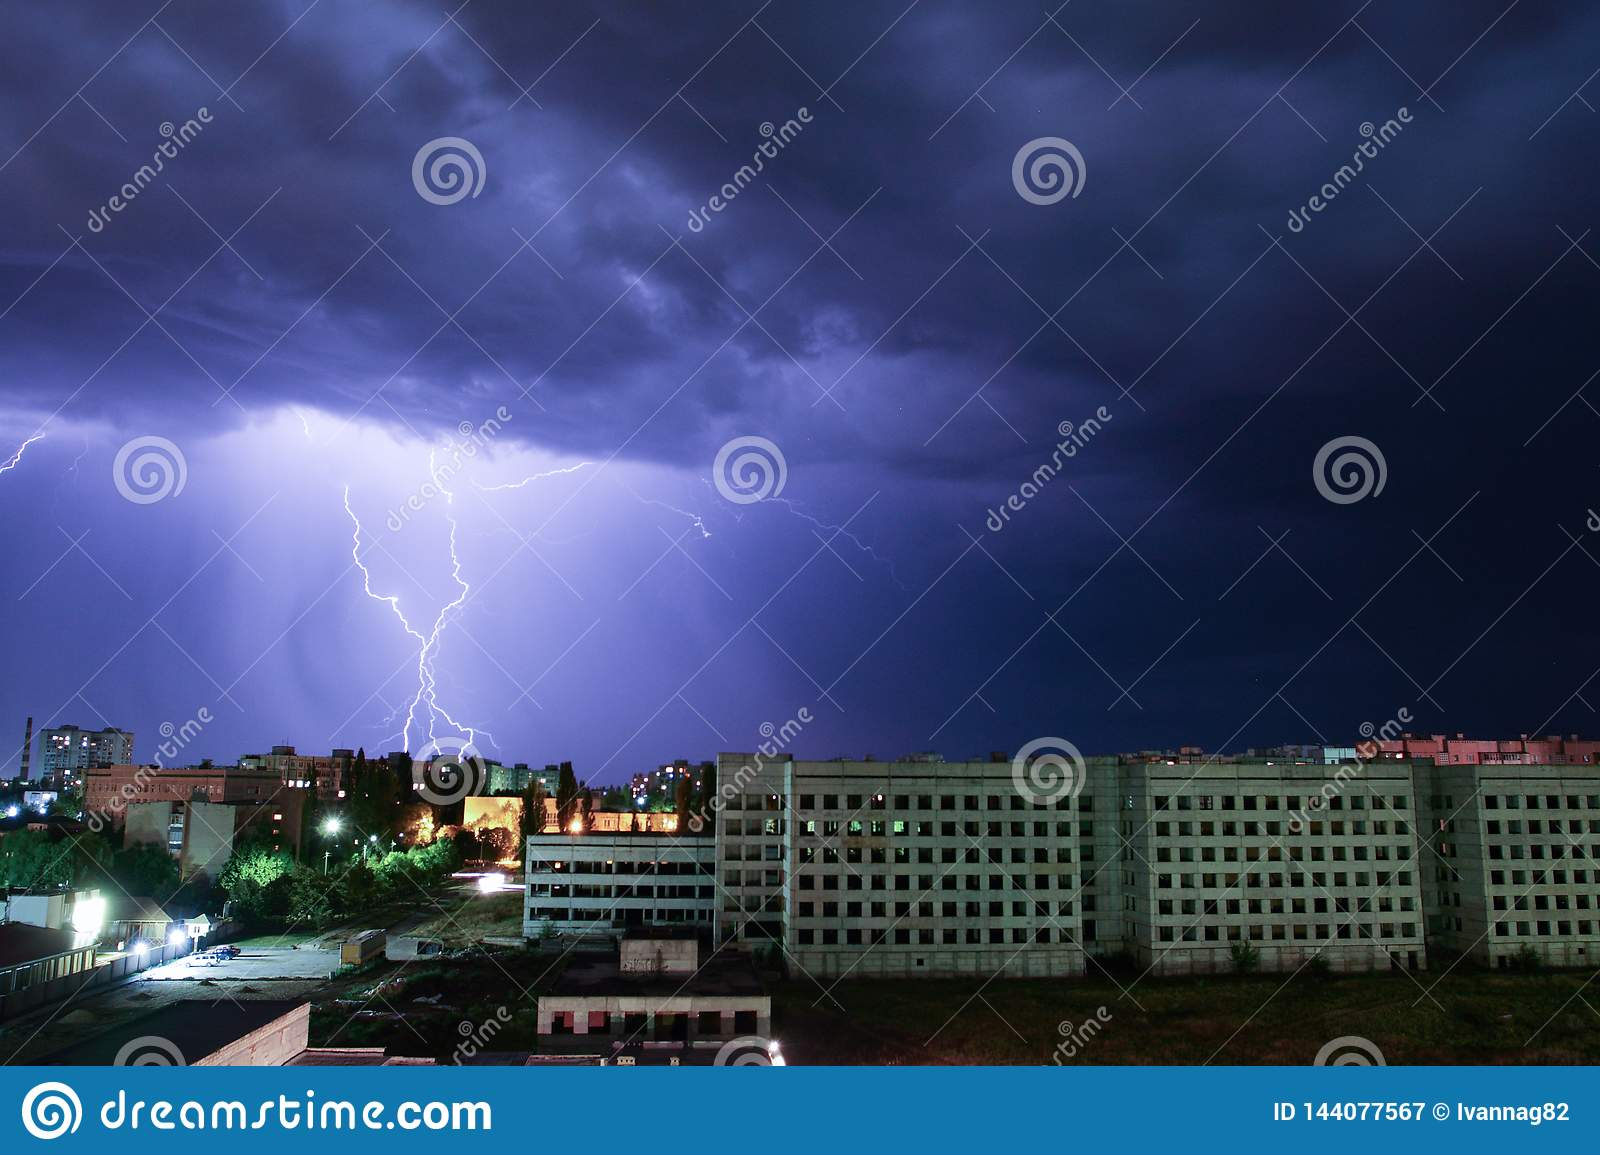 Thunderbolt over the house. Storm outside. Thunderstorm with lightning in the city